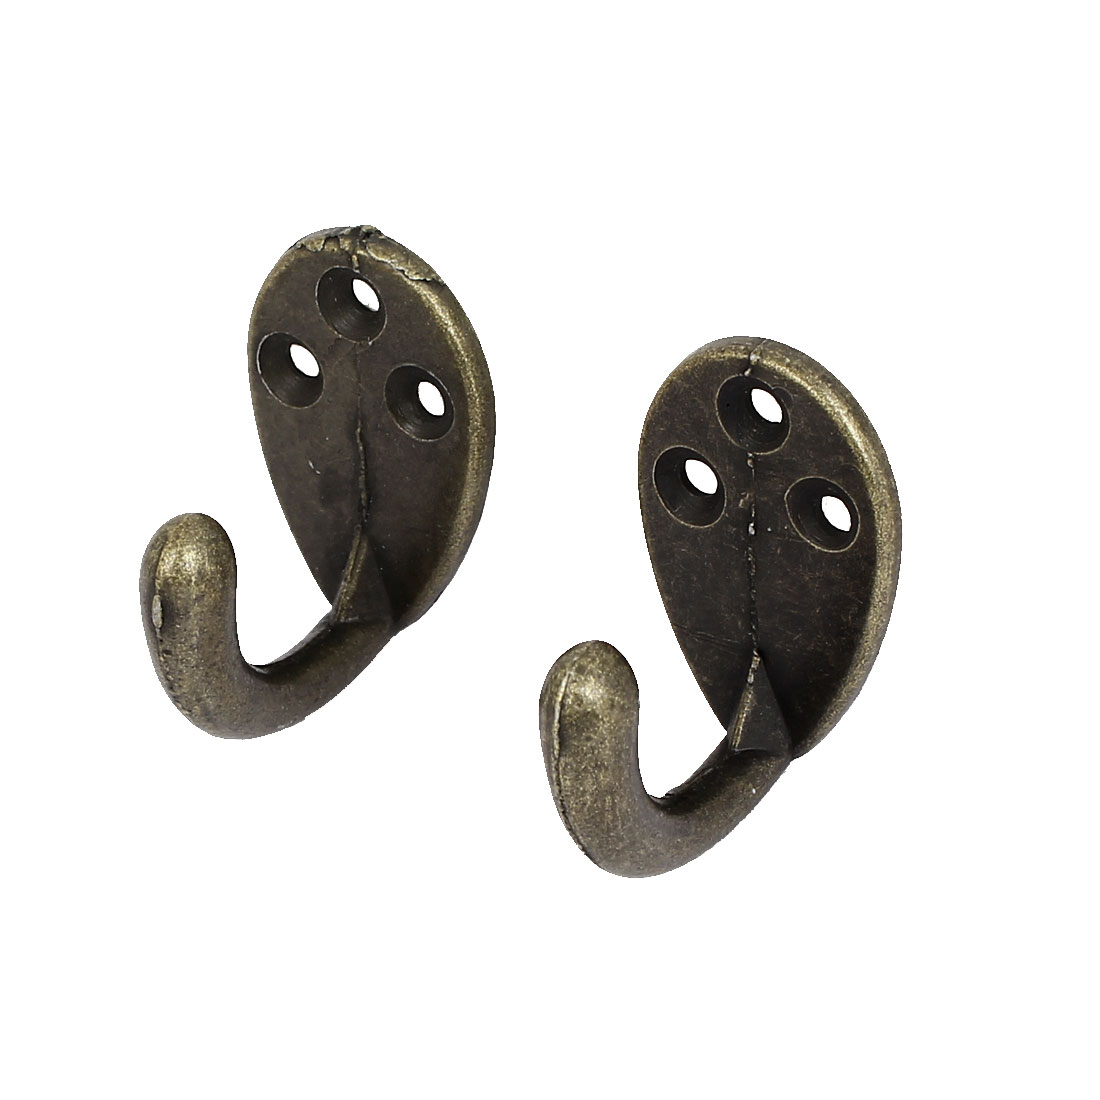 Bedroom Door Wall Mounted Alloy Vintage Style Single Hanger Hook Bronze Tone 2pcs